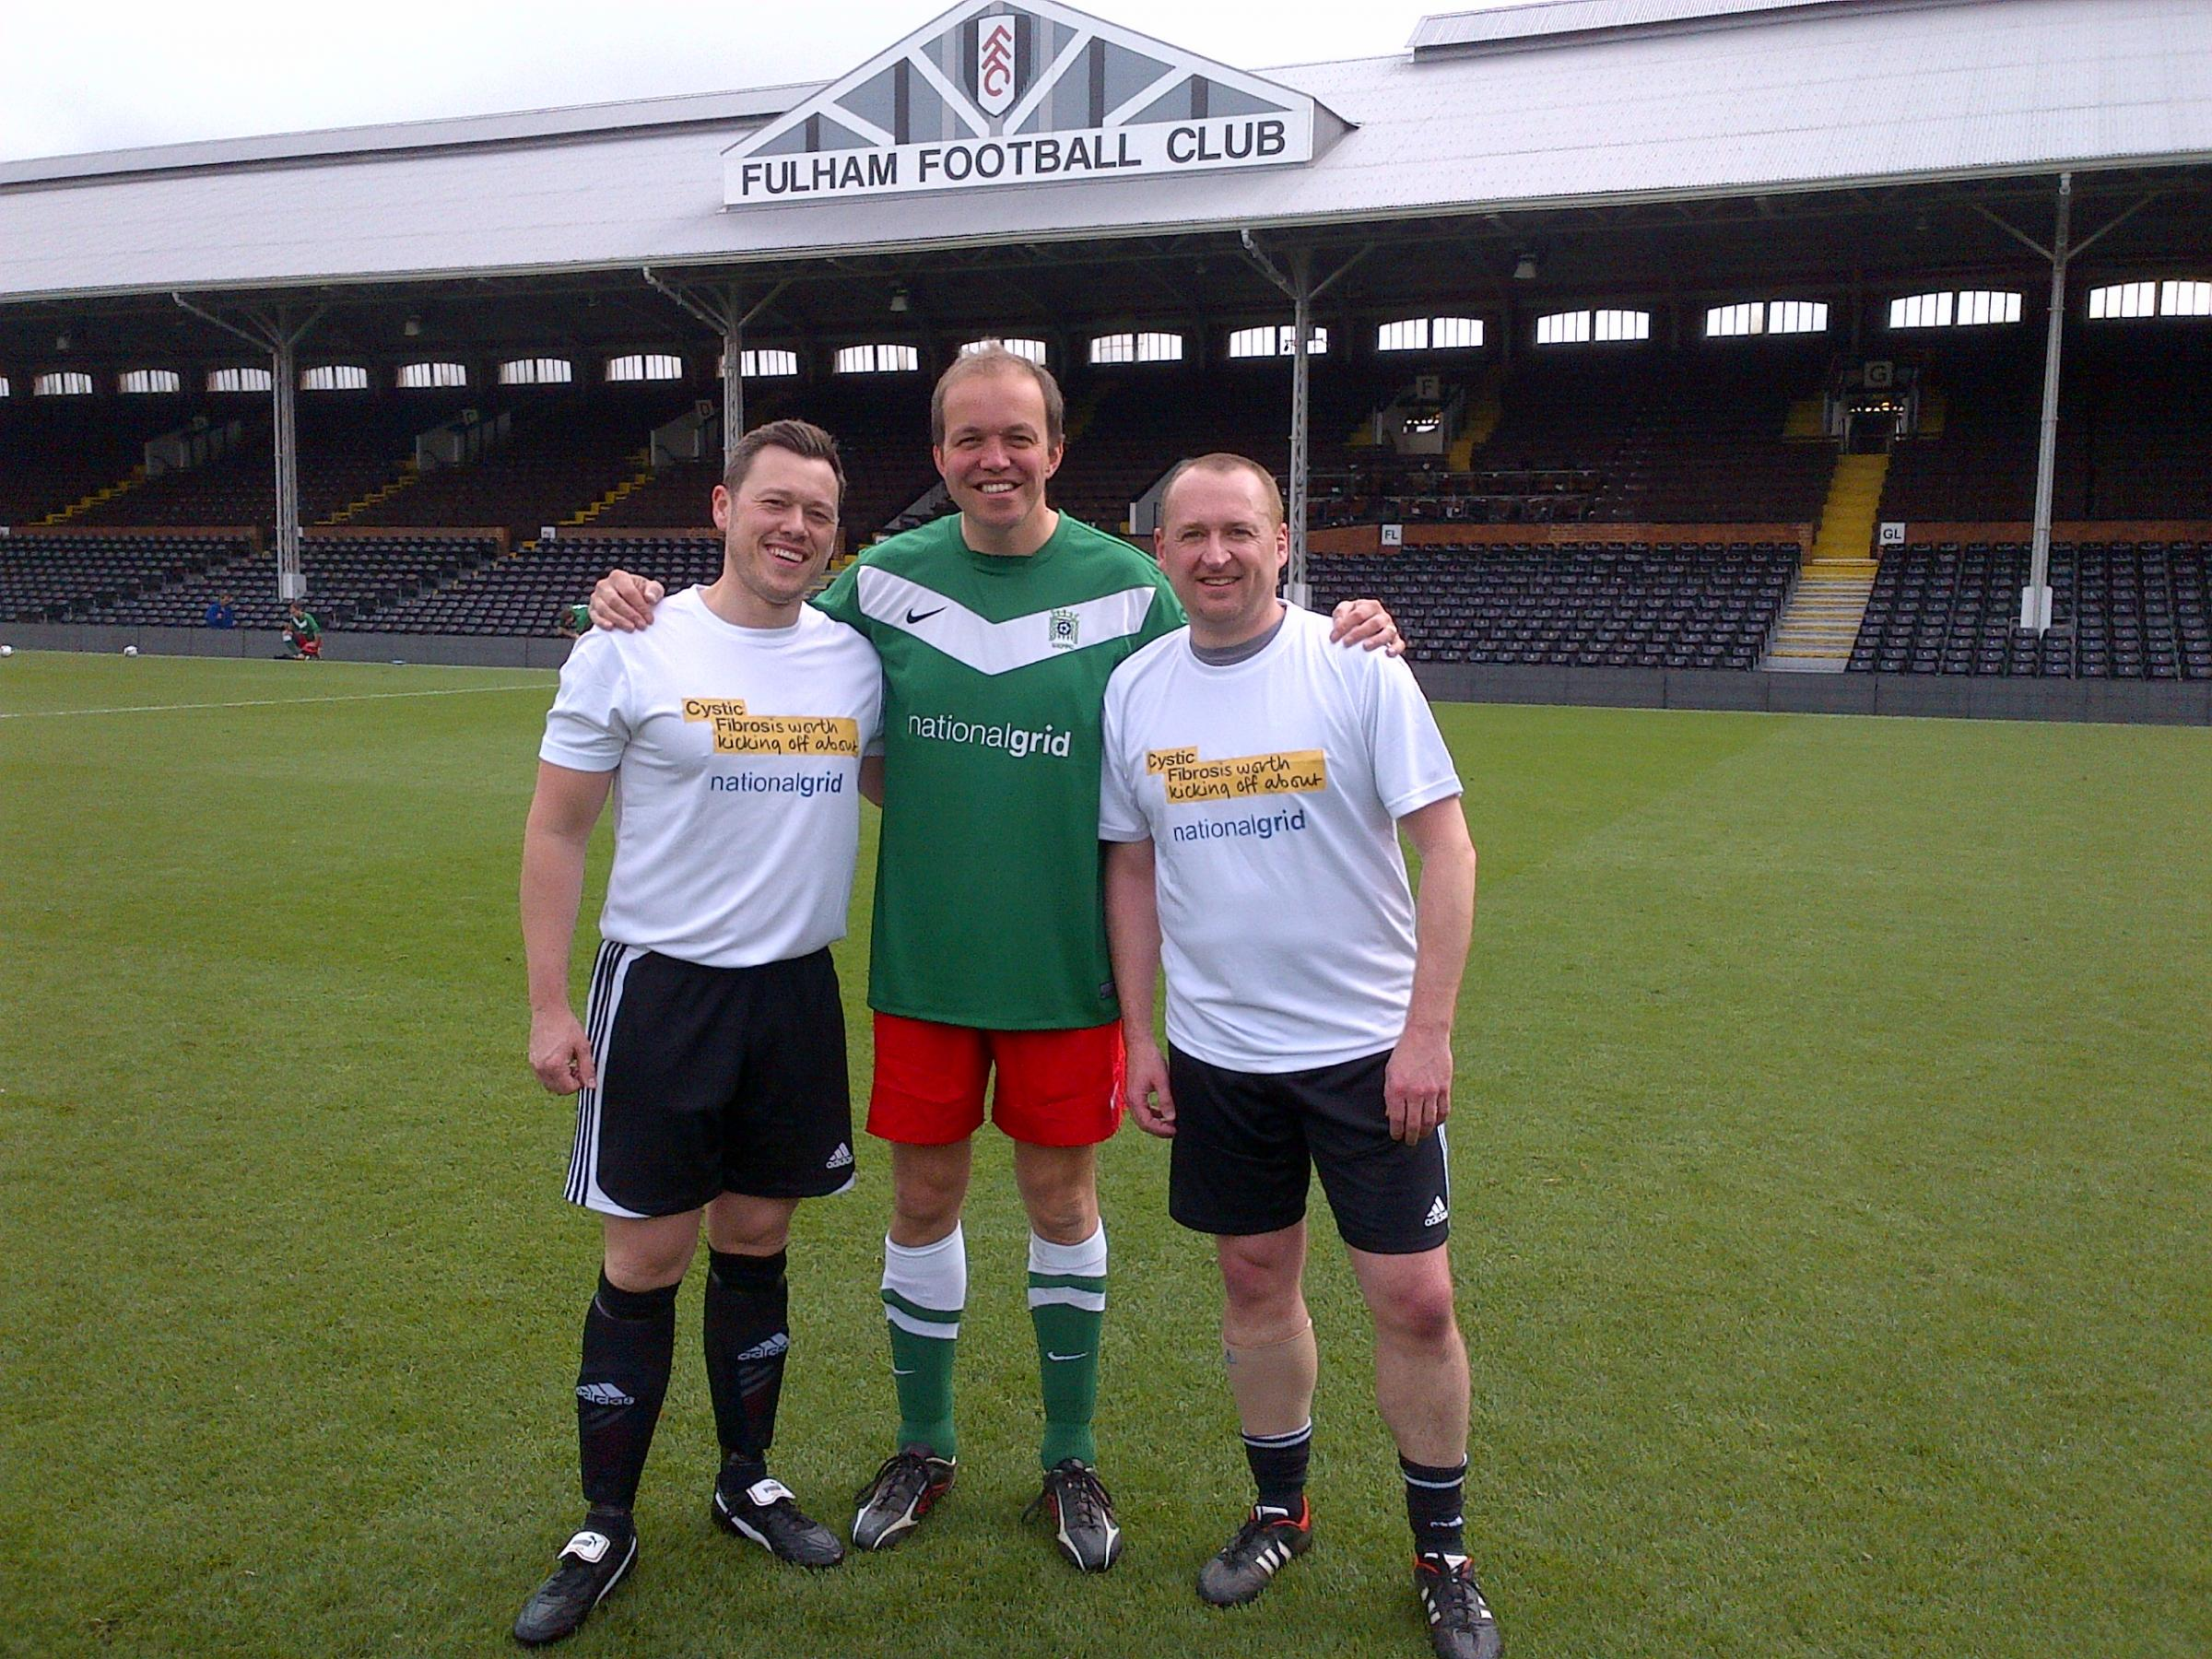 David Burrowes playing at Craven Cottage, Fulham, for the cystic fibrosis trust